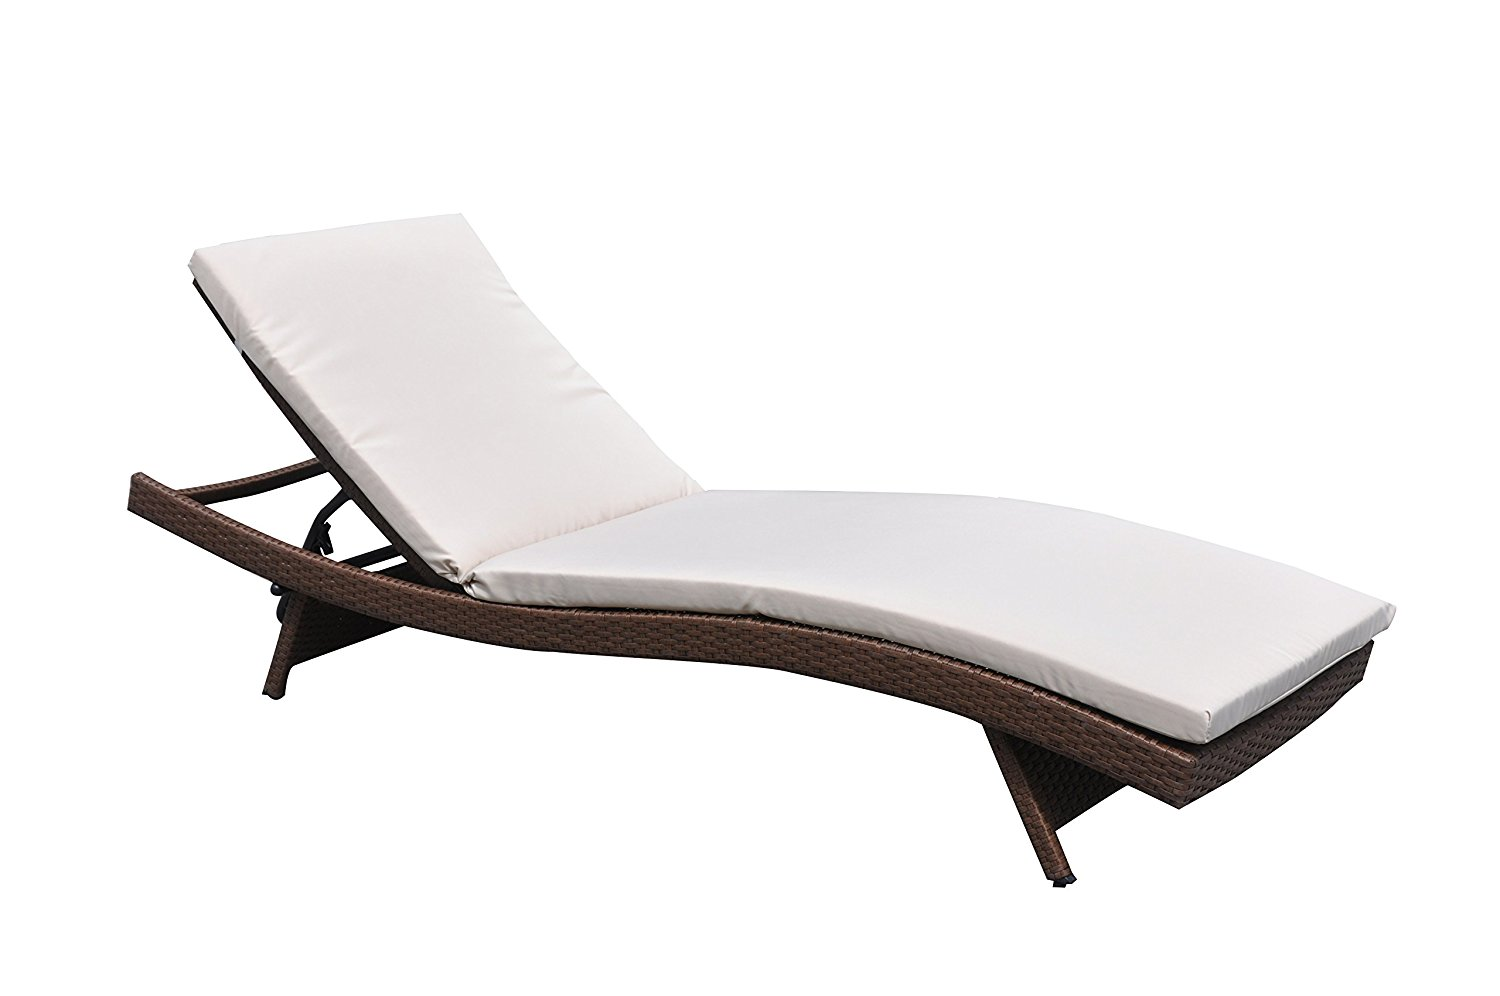 Patio chaise lounge clearance chaise by windward design for Chaise cushions clearance